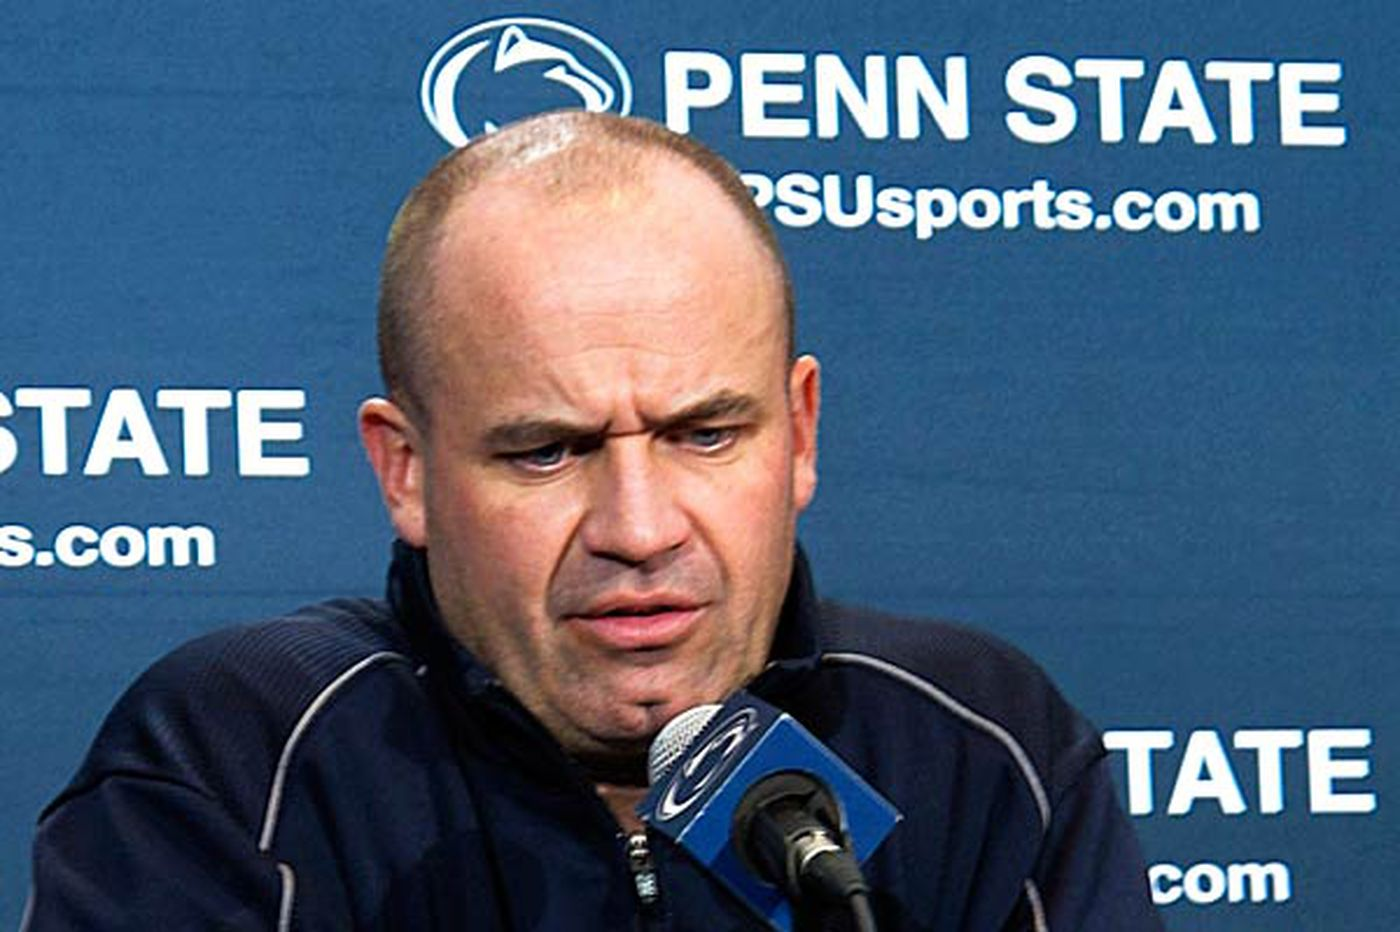 Penn State's O'Brien responds angrily to Sports Illustrated report